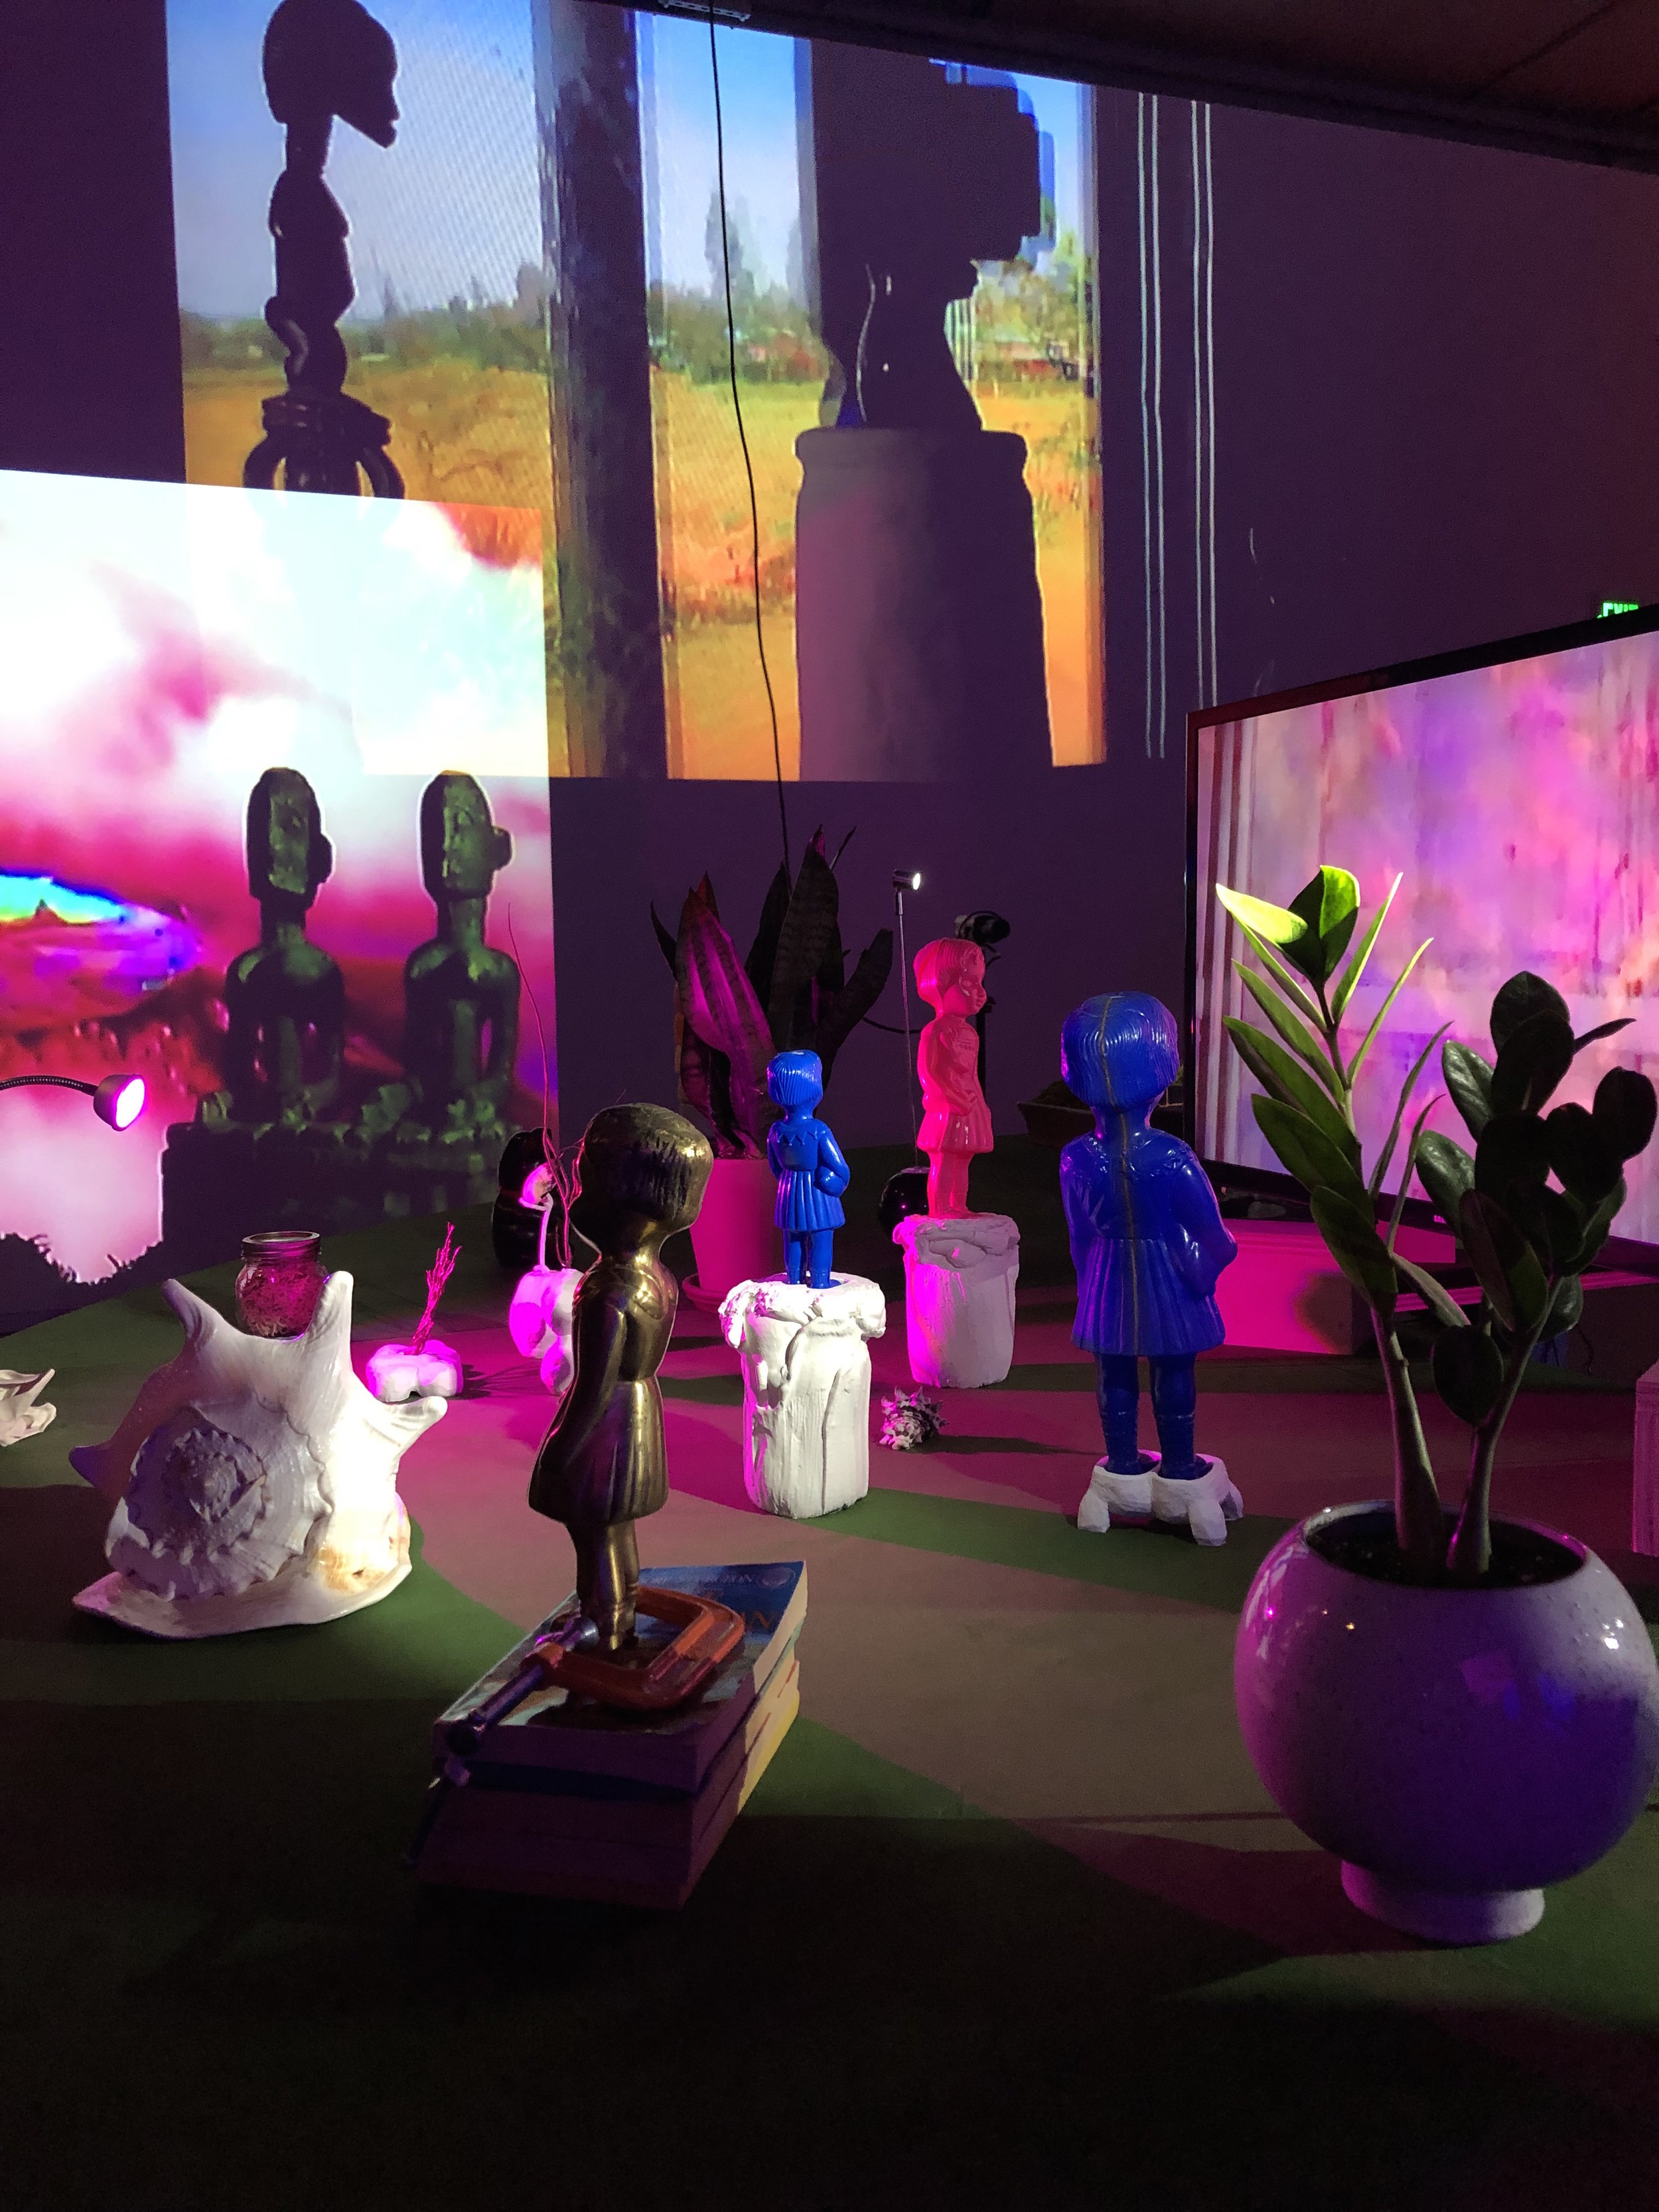 Installation view,  Cauleen Smith: Give It or Leave It, 2019,  Institute of Contemporary Art at VCU. Image courtesy of Paige Goodpasture.